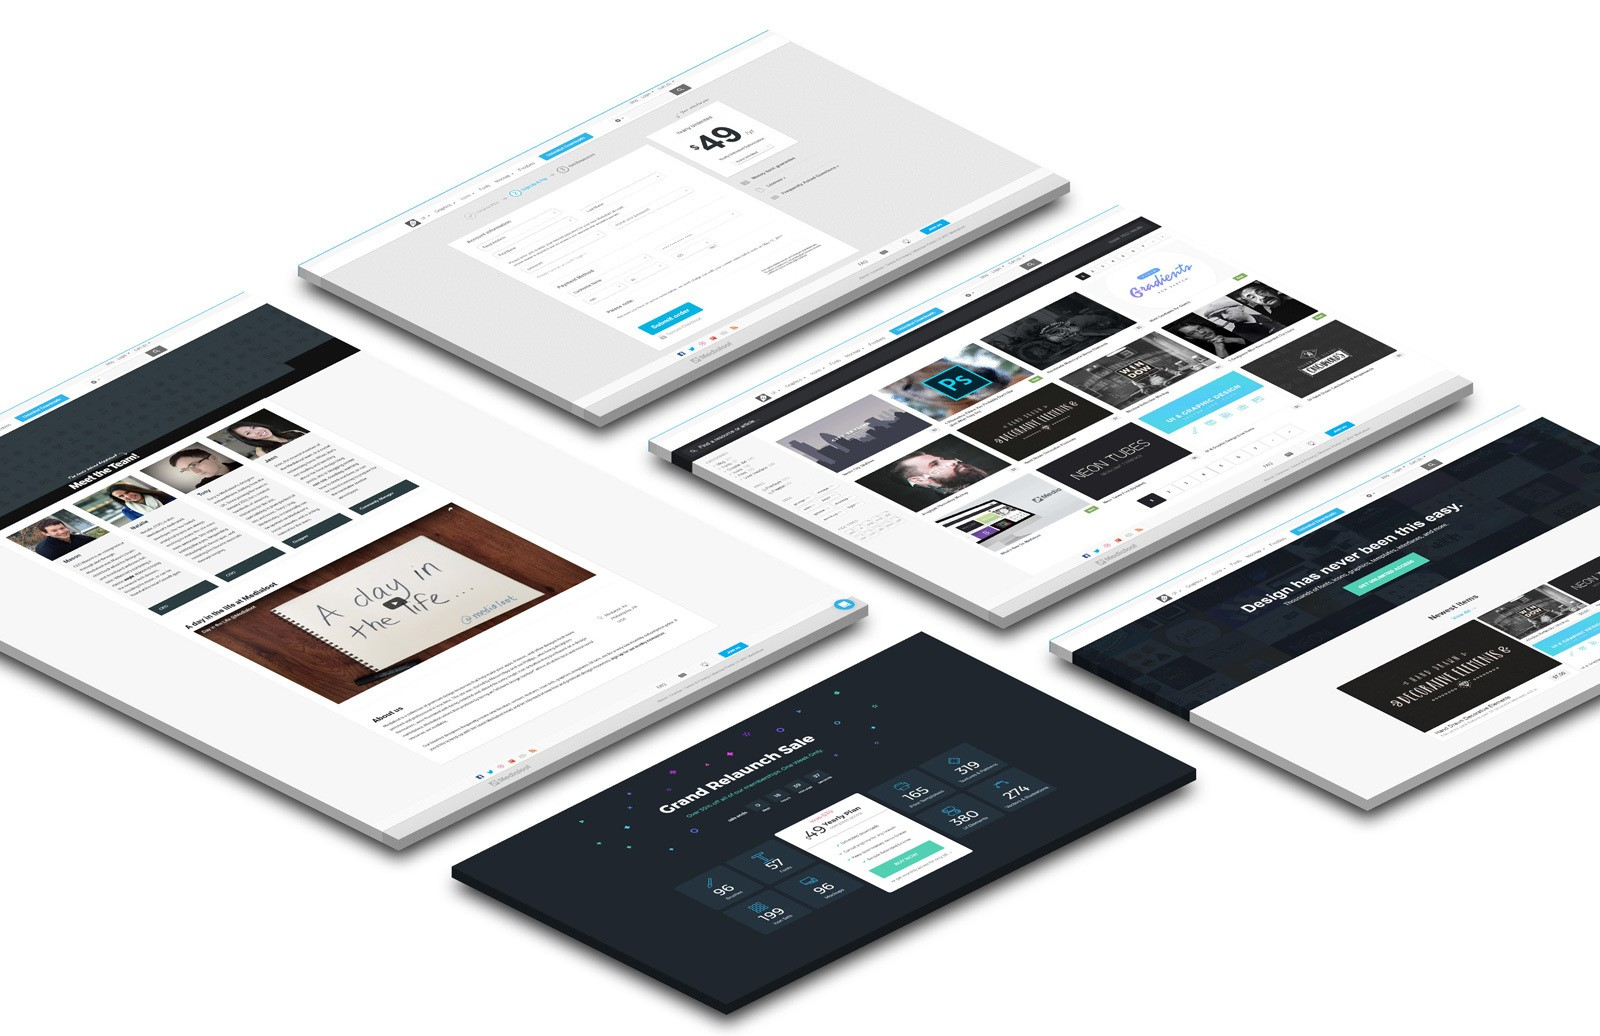 Large Perspective Website Mockup Preview 5